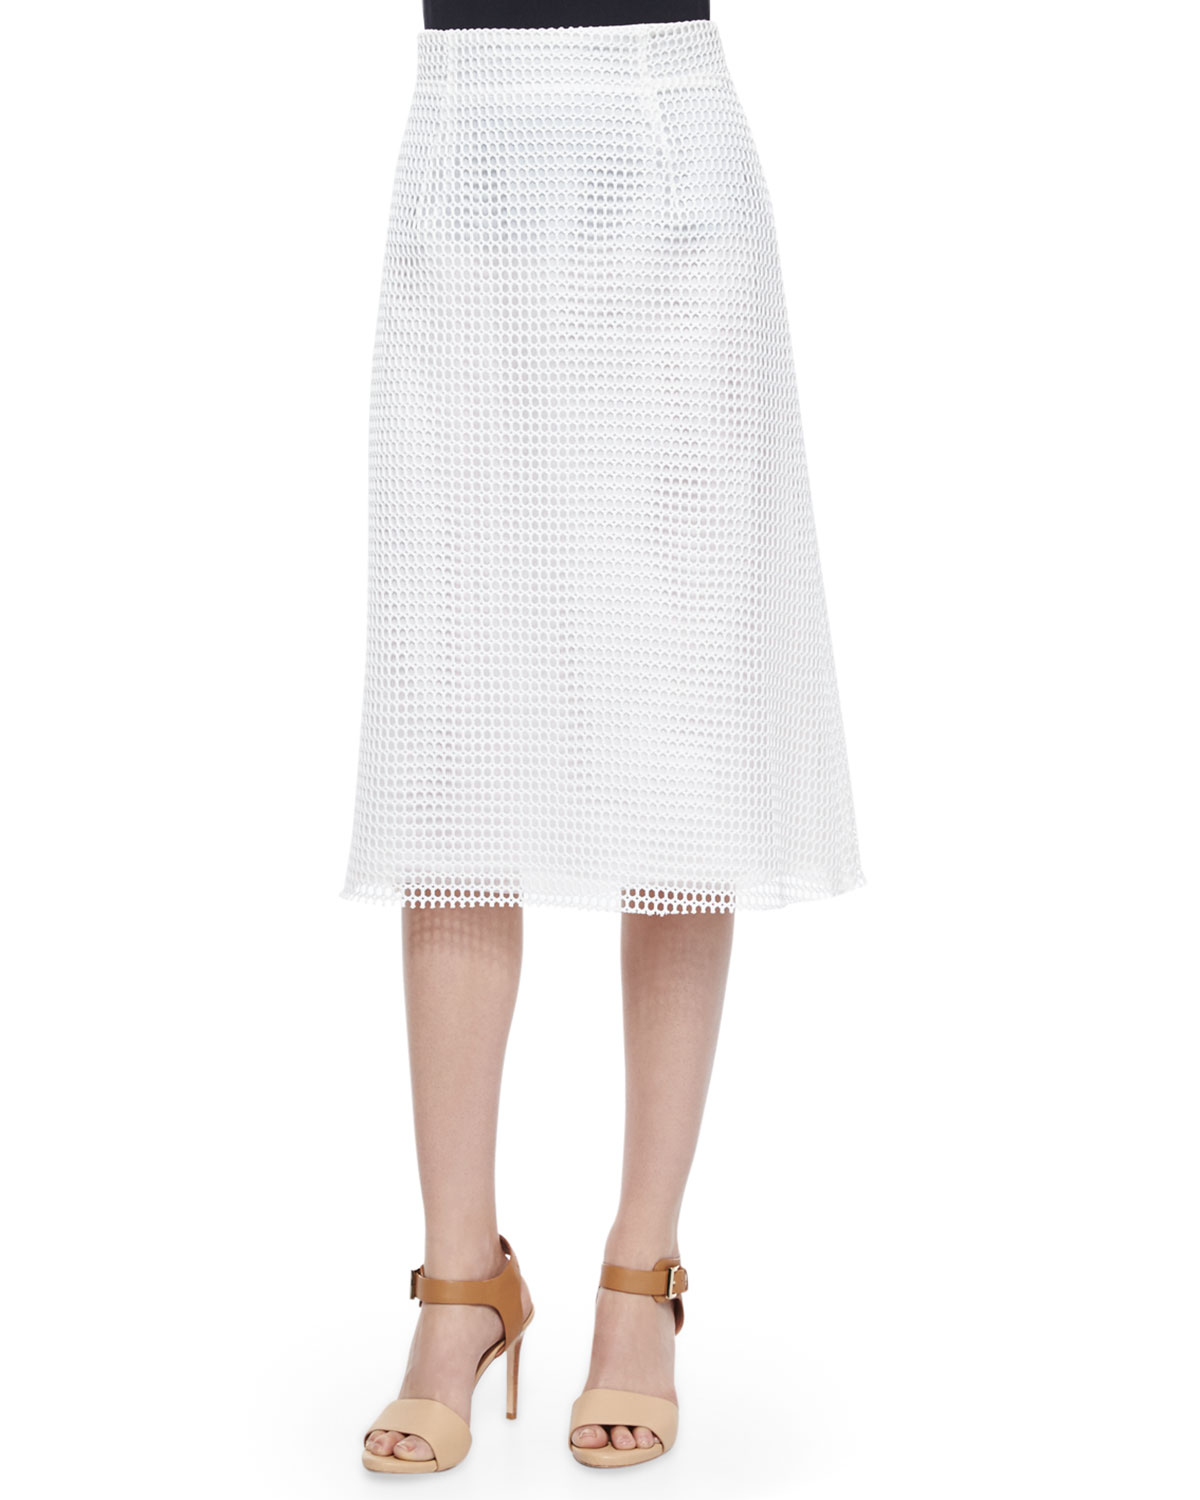 Space Lace Raw-Edge Midi Skirt, Summer White